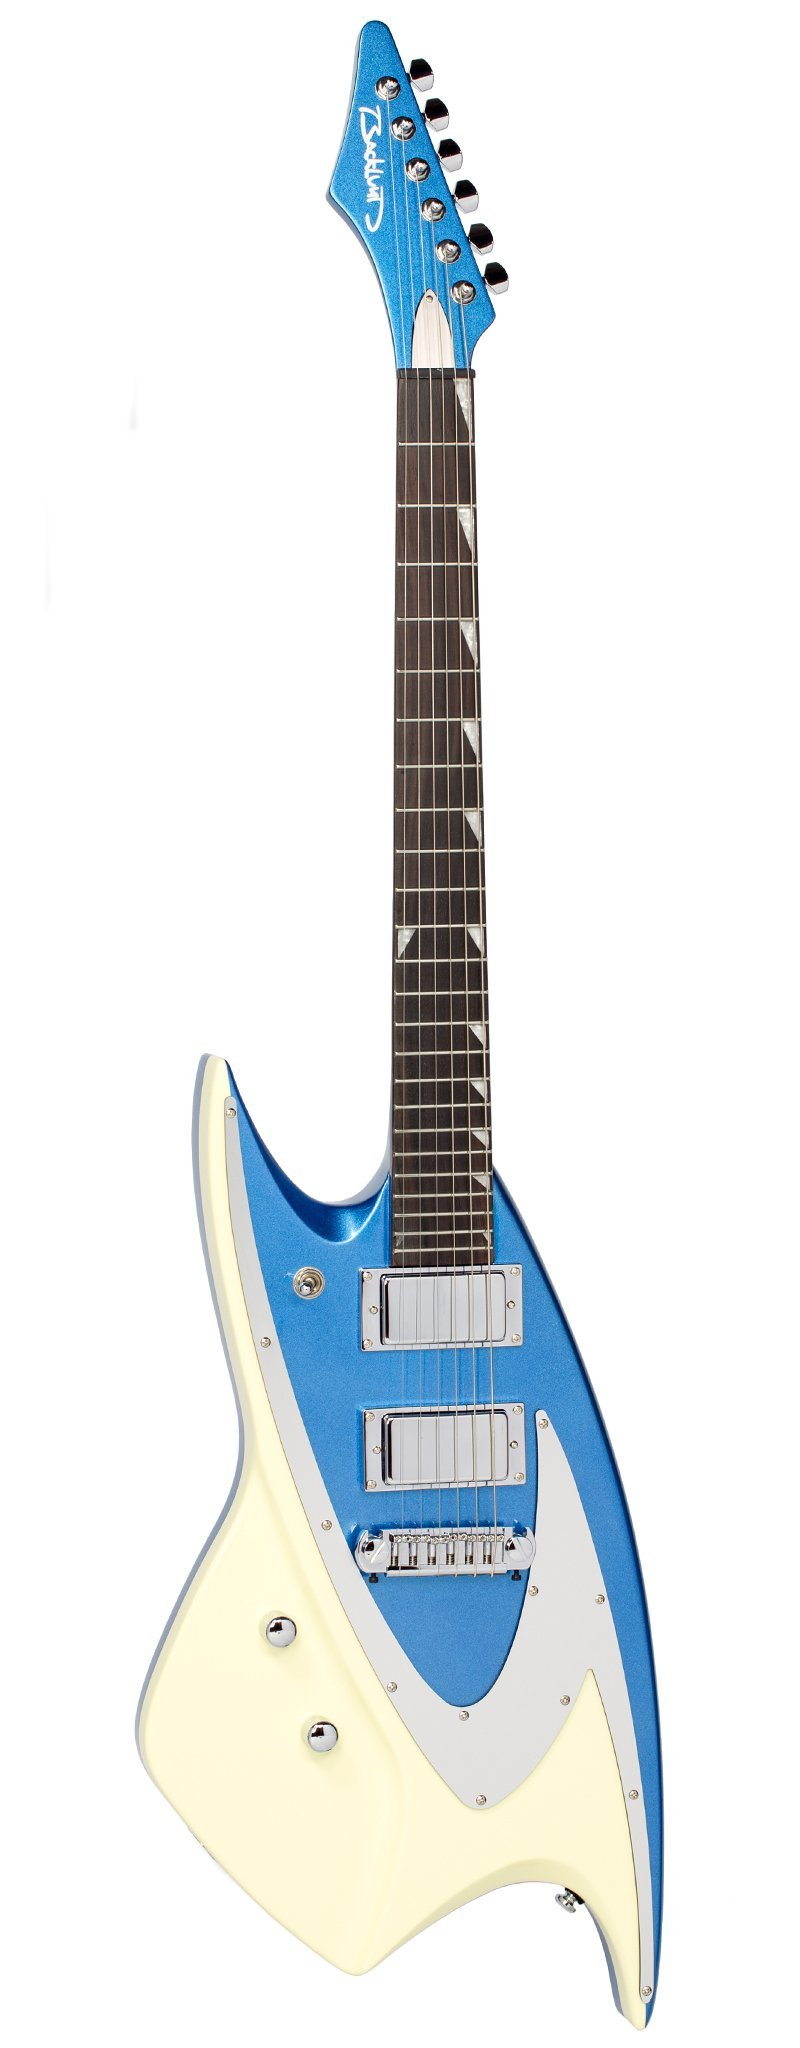 Eastwood Guitars Backlund 400 Metallic Blue LH Full Front